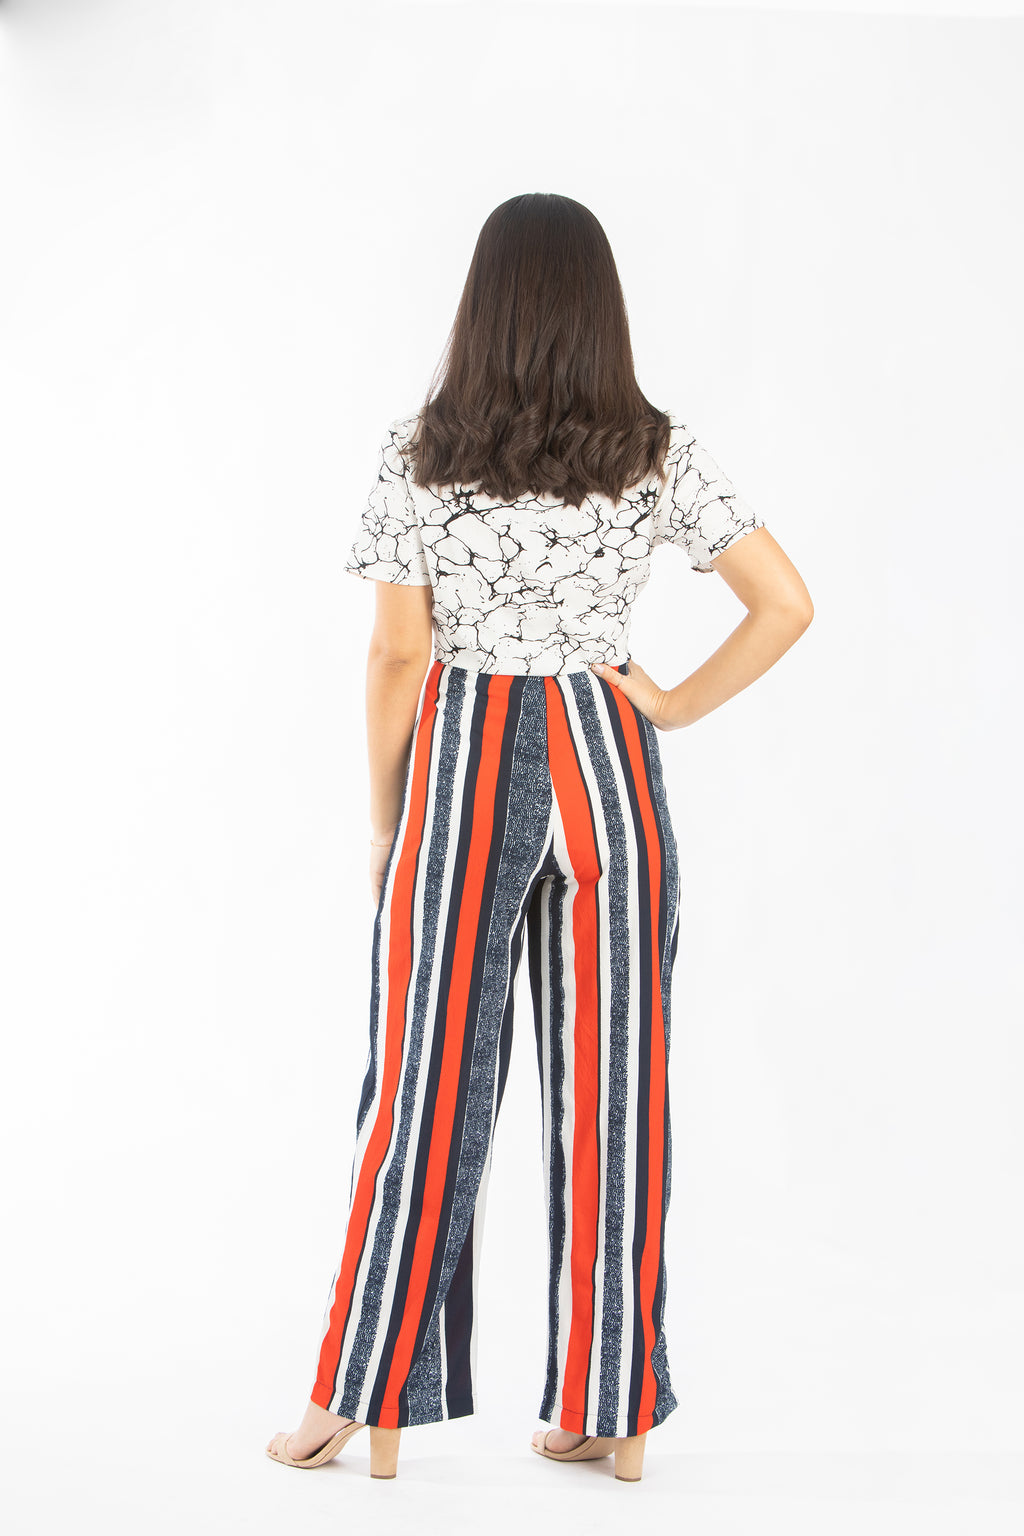 Colorful Pant | NR-374 (VER)